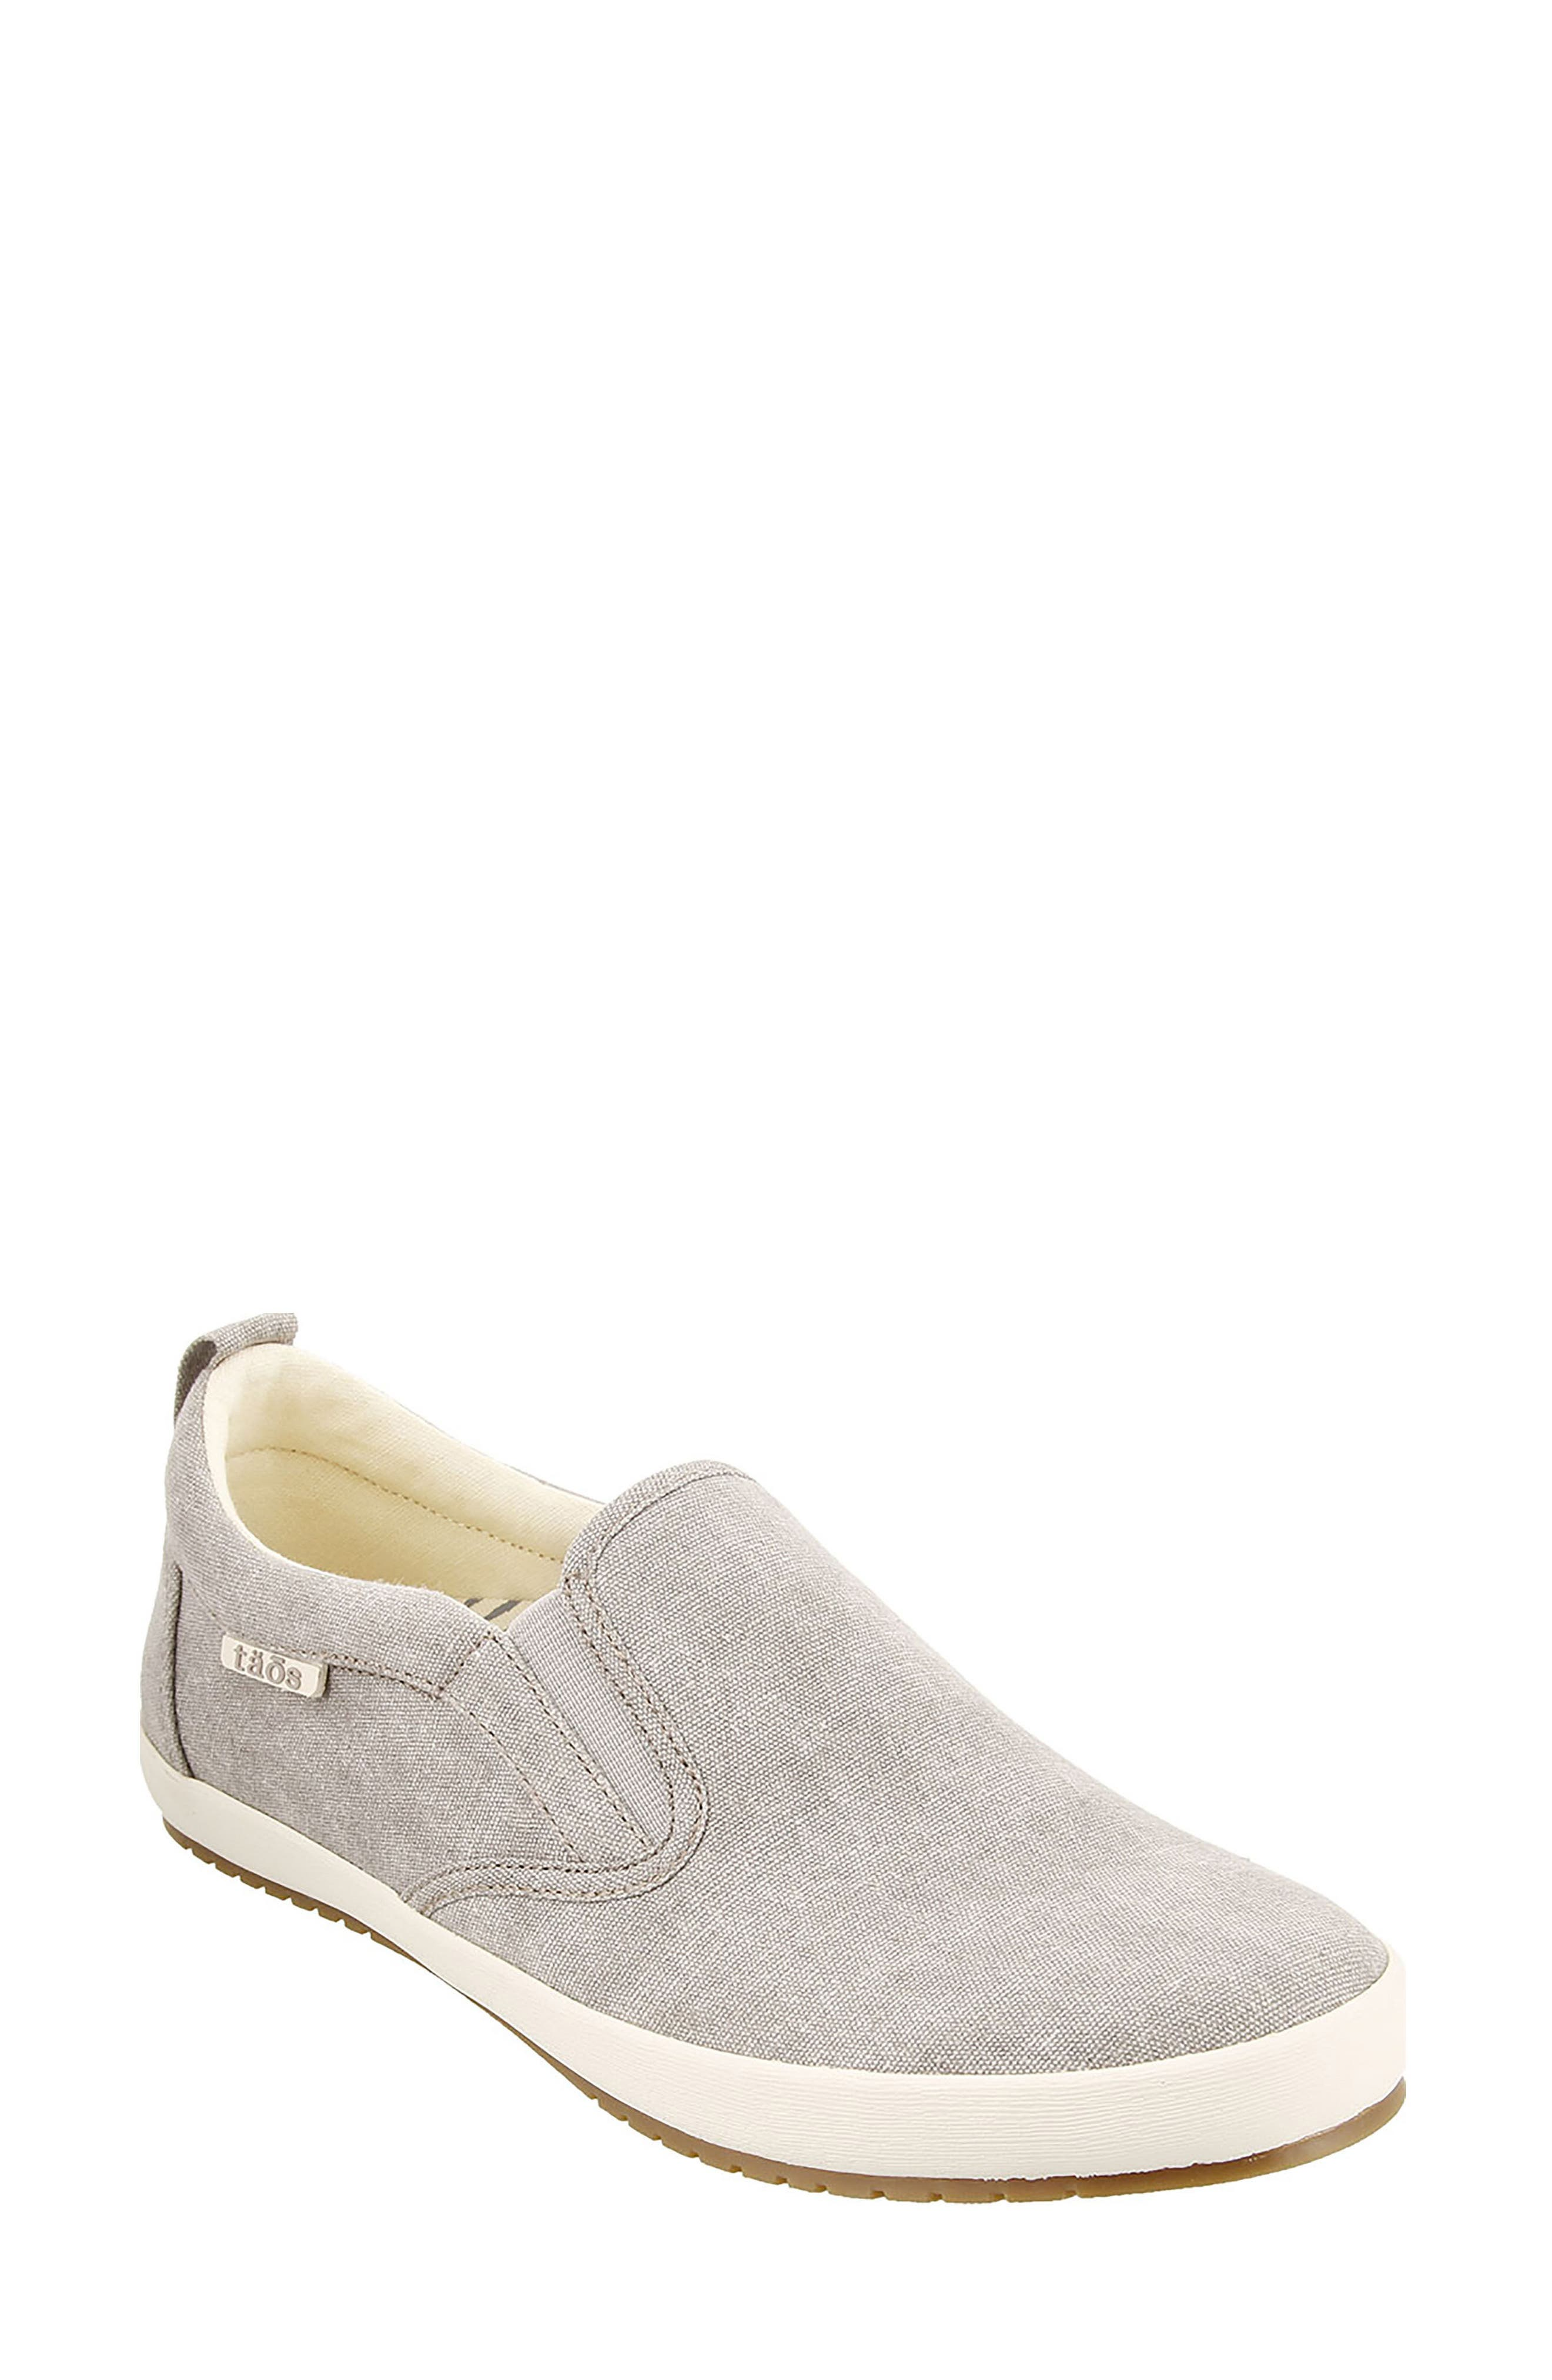 Dandy Slip-On Sneaker,                             Main thumbnail 1, color,                             GREY WASHED CANVAS